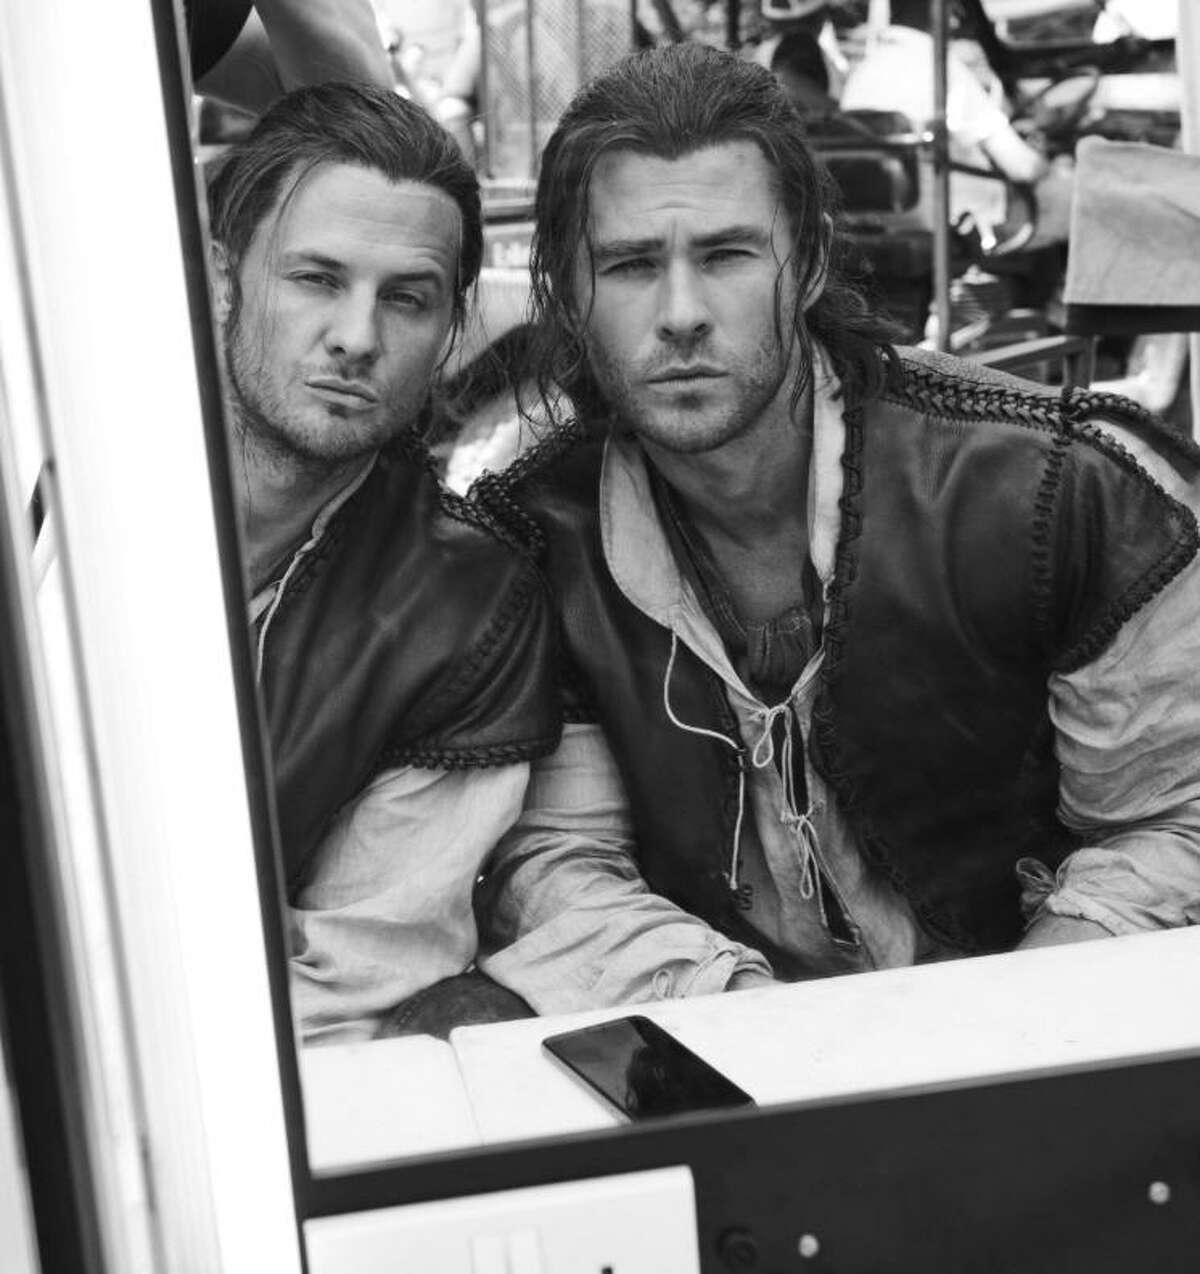 Stuntman Bobby Holland Hanton with actor Chris Hemsworth during the filming of